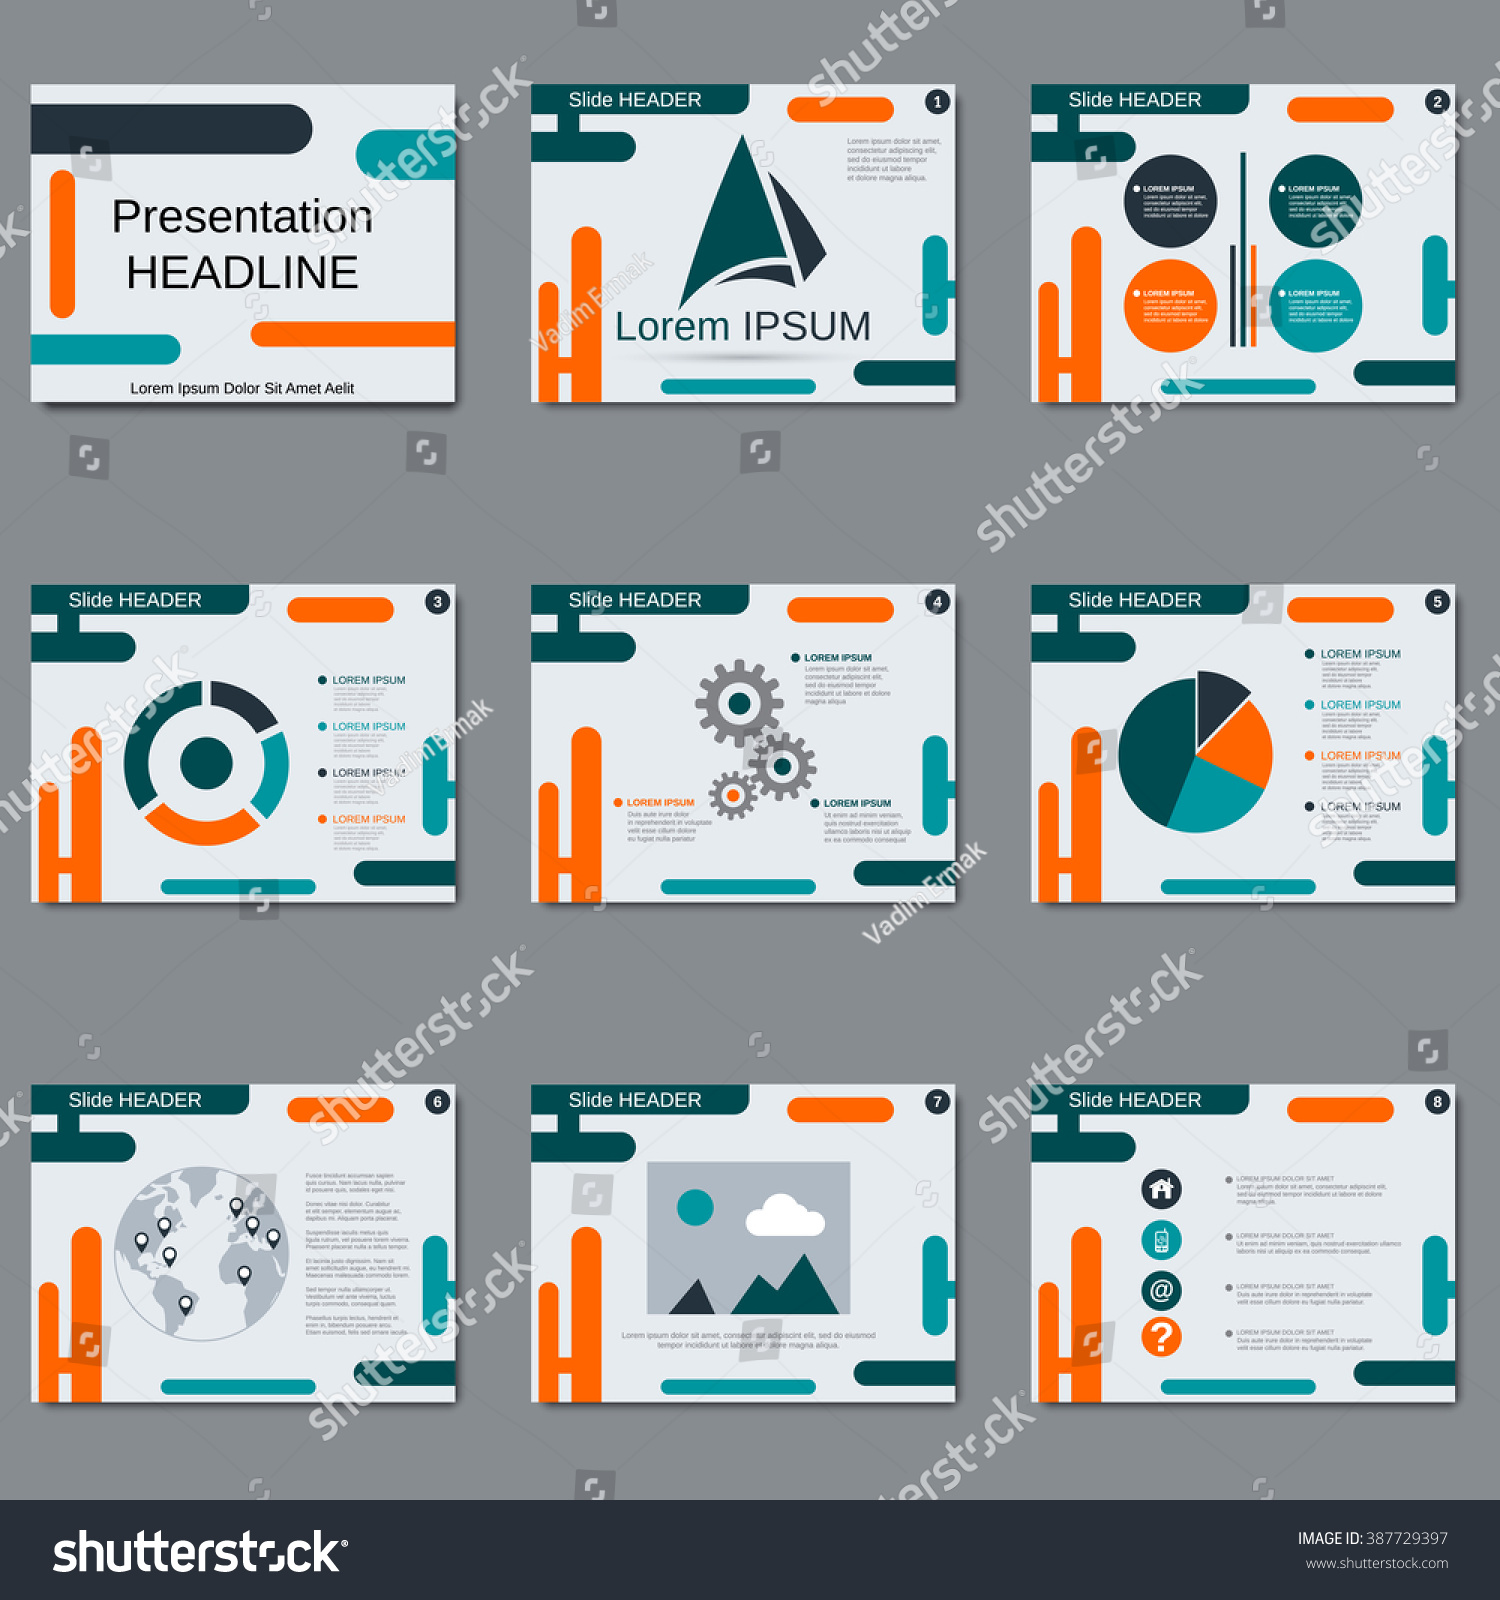 professional business presentation slide show brochure stock vector 387729397 shutterstock. Black Bedroom Furniture Sets. Home Design Ideas